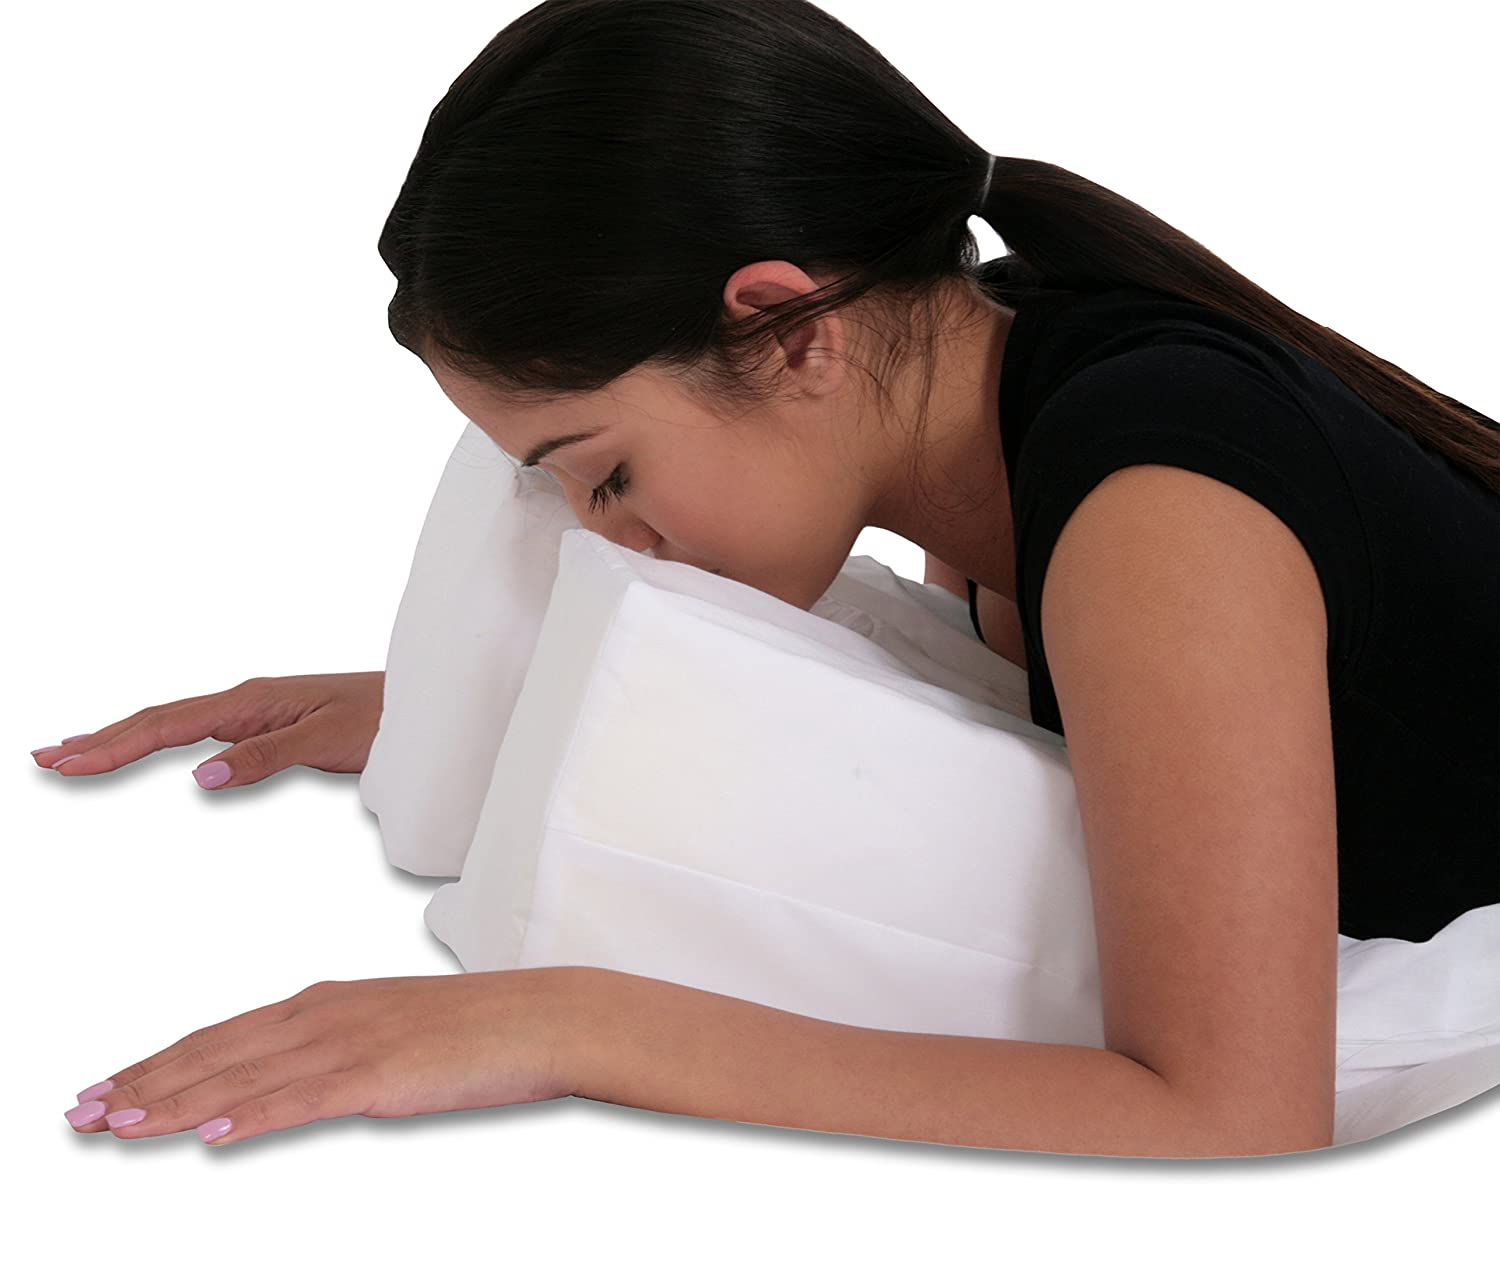 Stomach sleeper pillow amazonimage credit amazon wer for Best down pillows for stomach sleepers